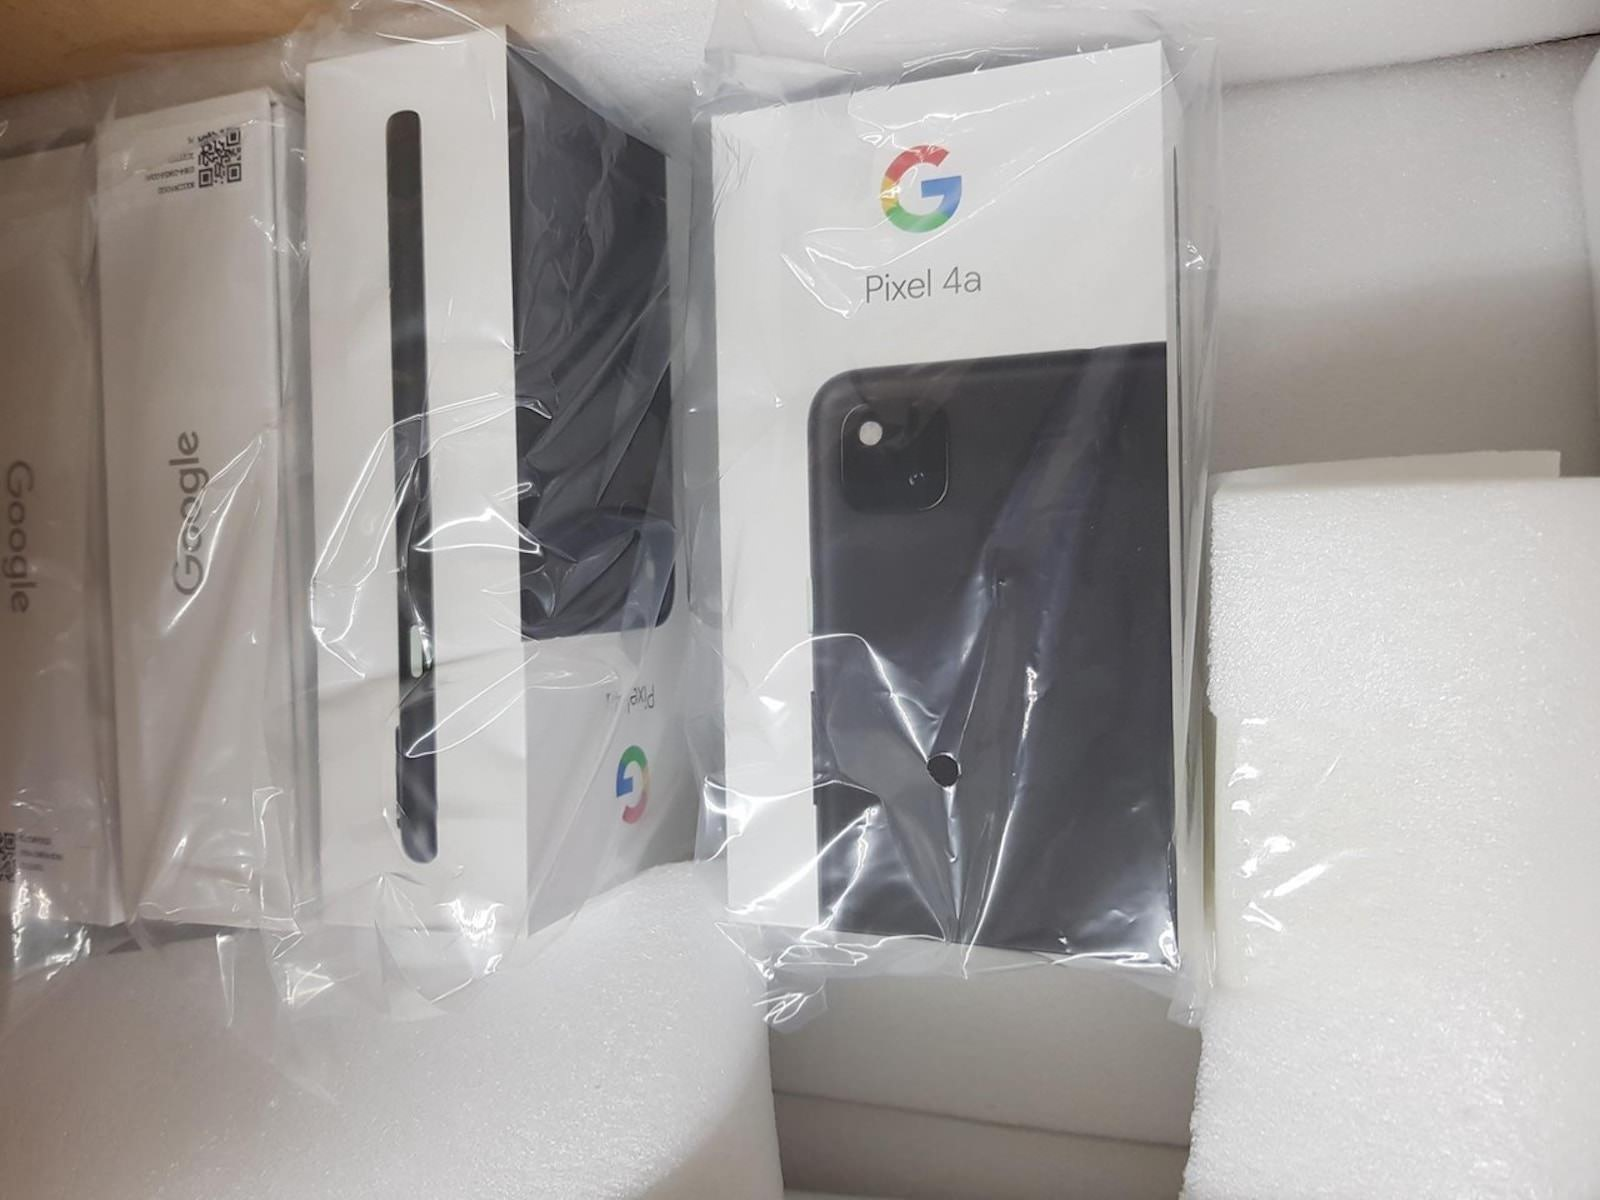 Google Pixel 4a package